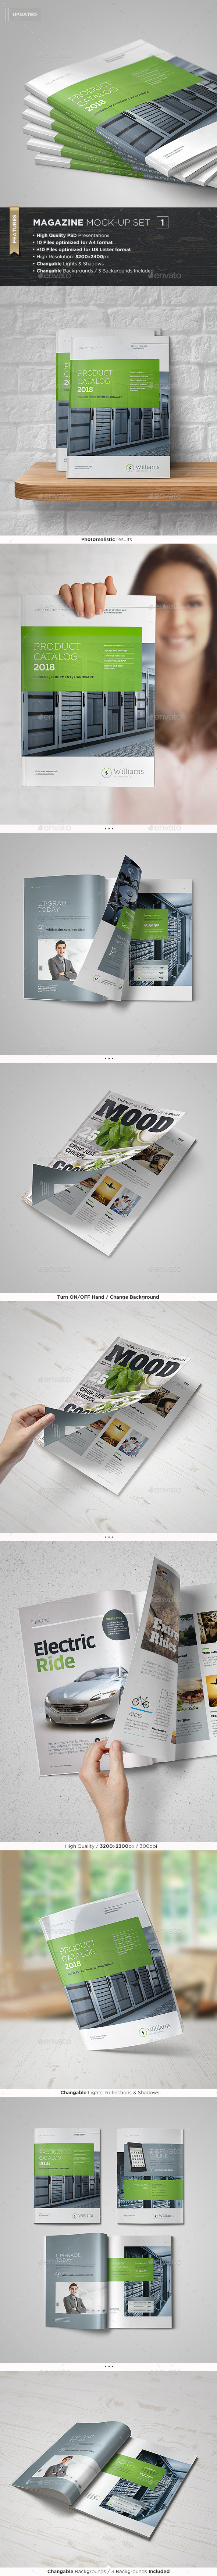 Magazine Mock-Up Set - Magazines Print